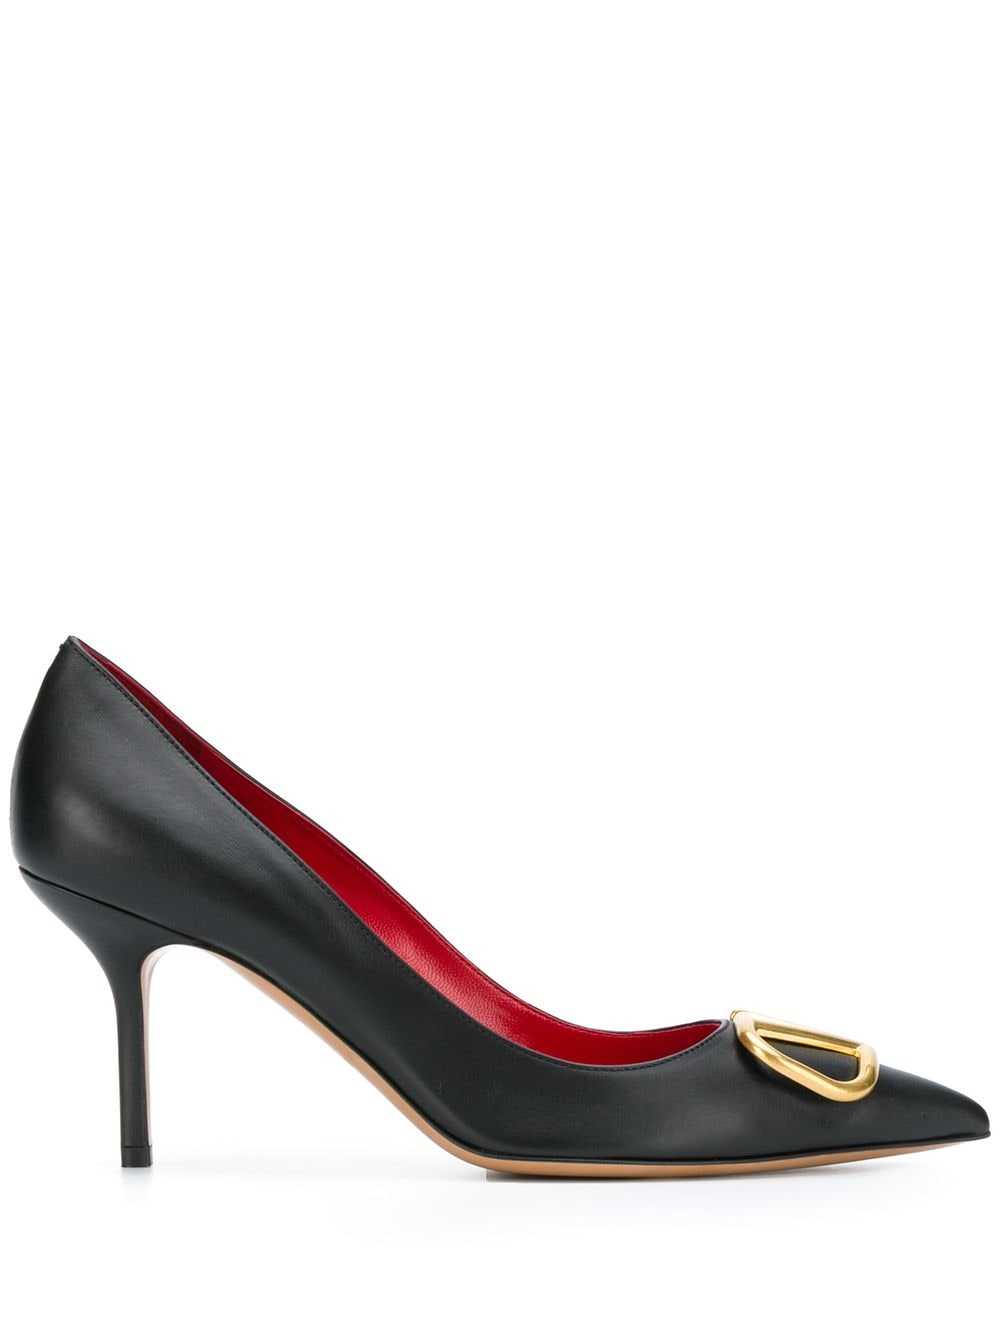 Vlogo Leather Pumps